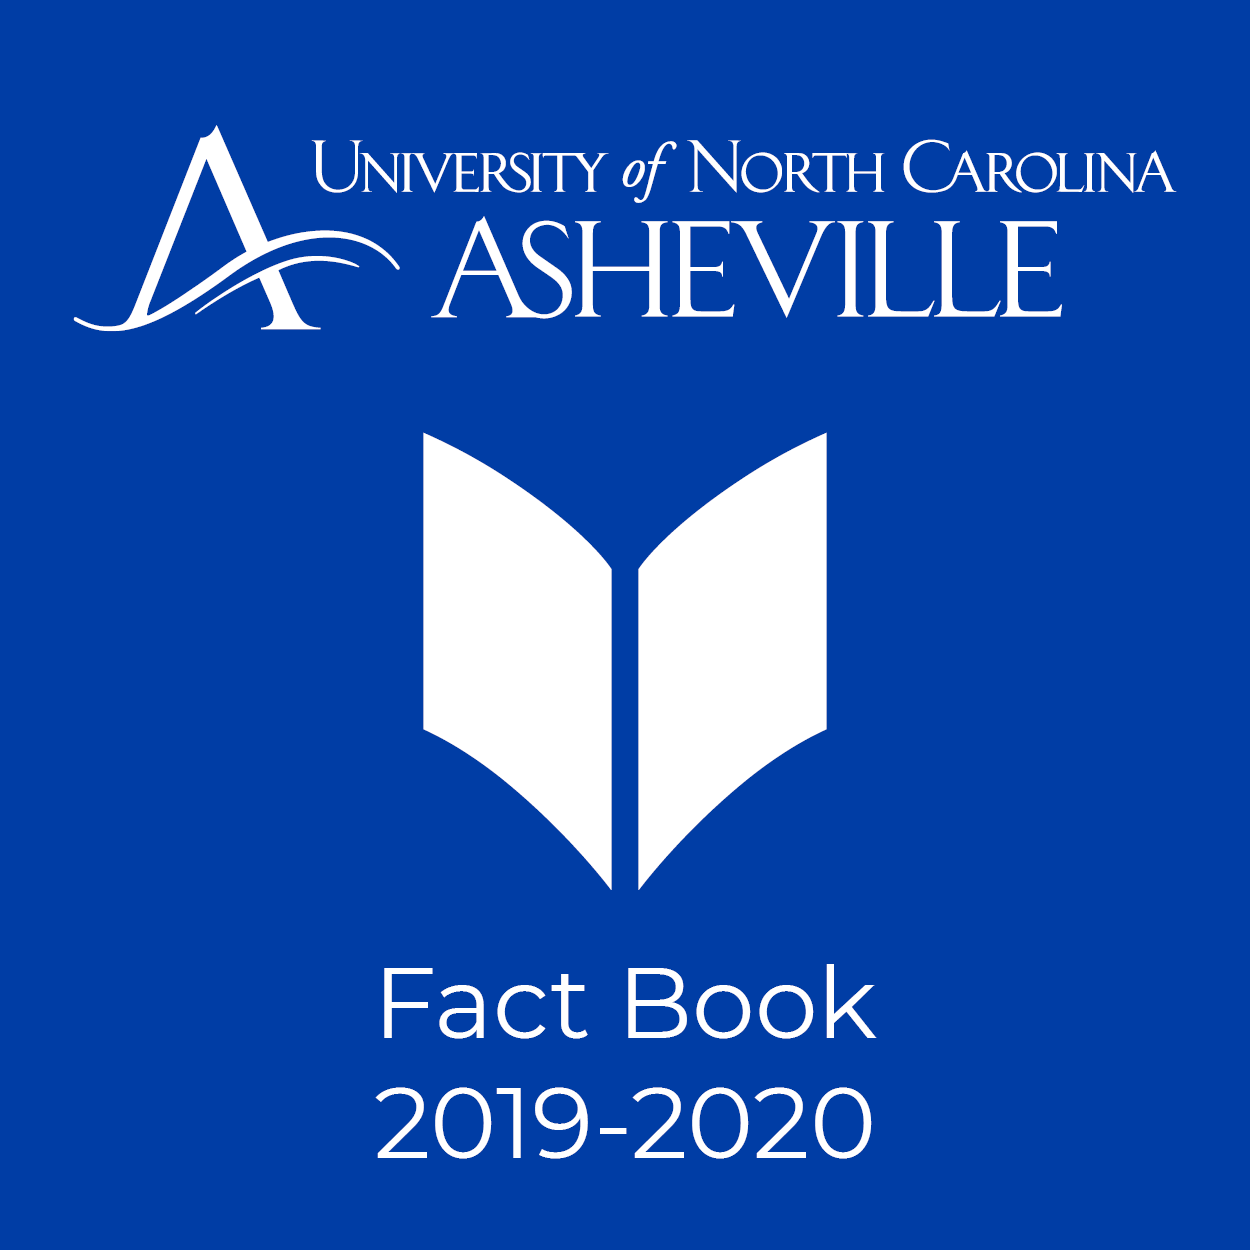 2019-2020 UNC Asheville Fact Book